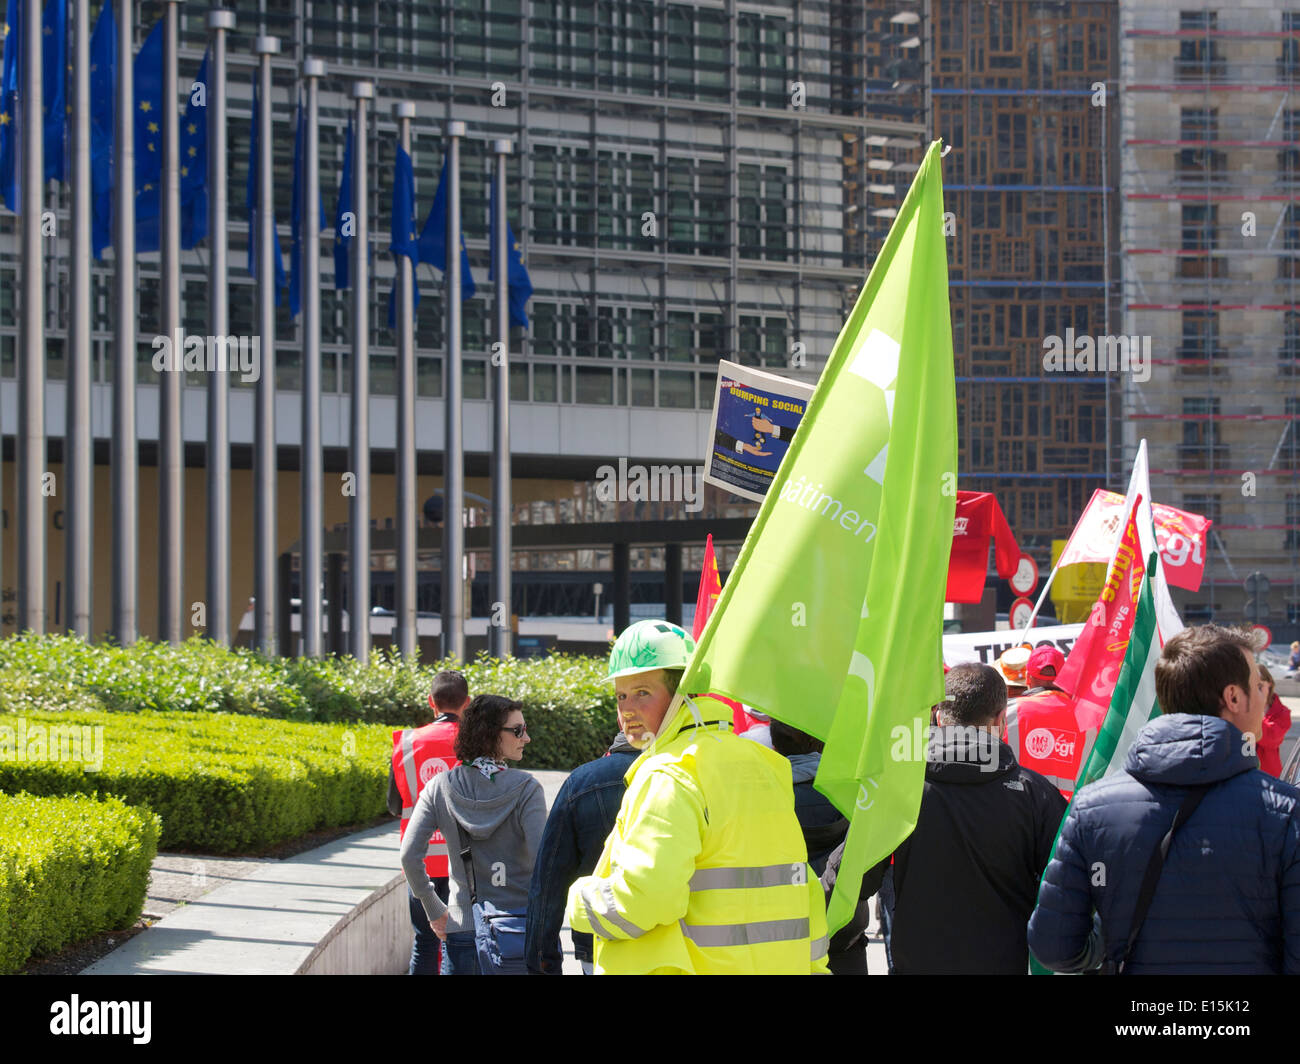 People protesting at the European Commission Berlaymont building in Brussels, Belgium - Stock Image